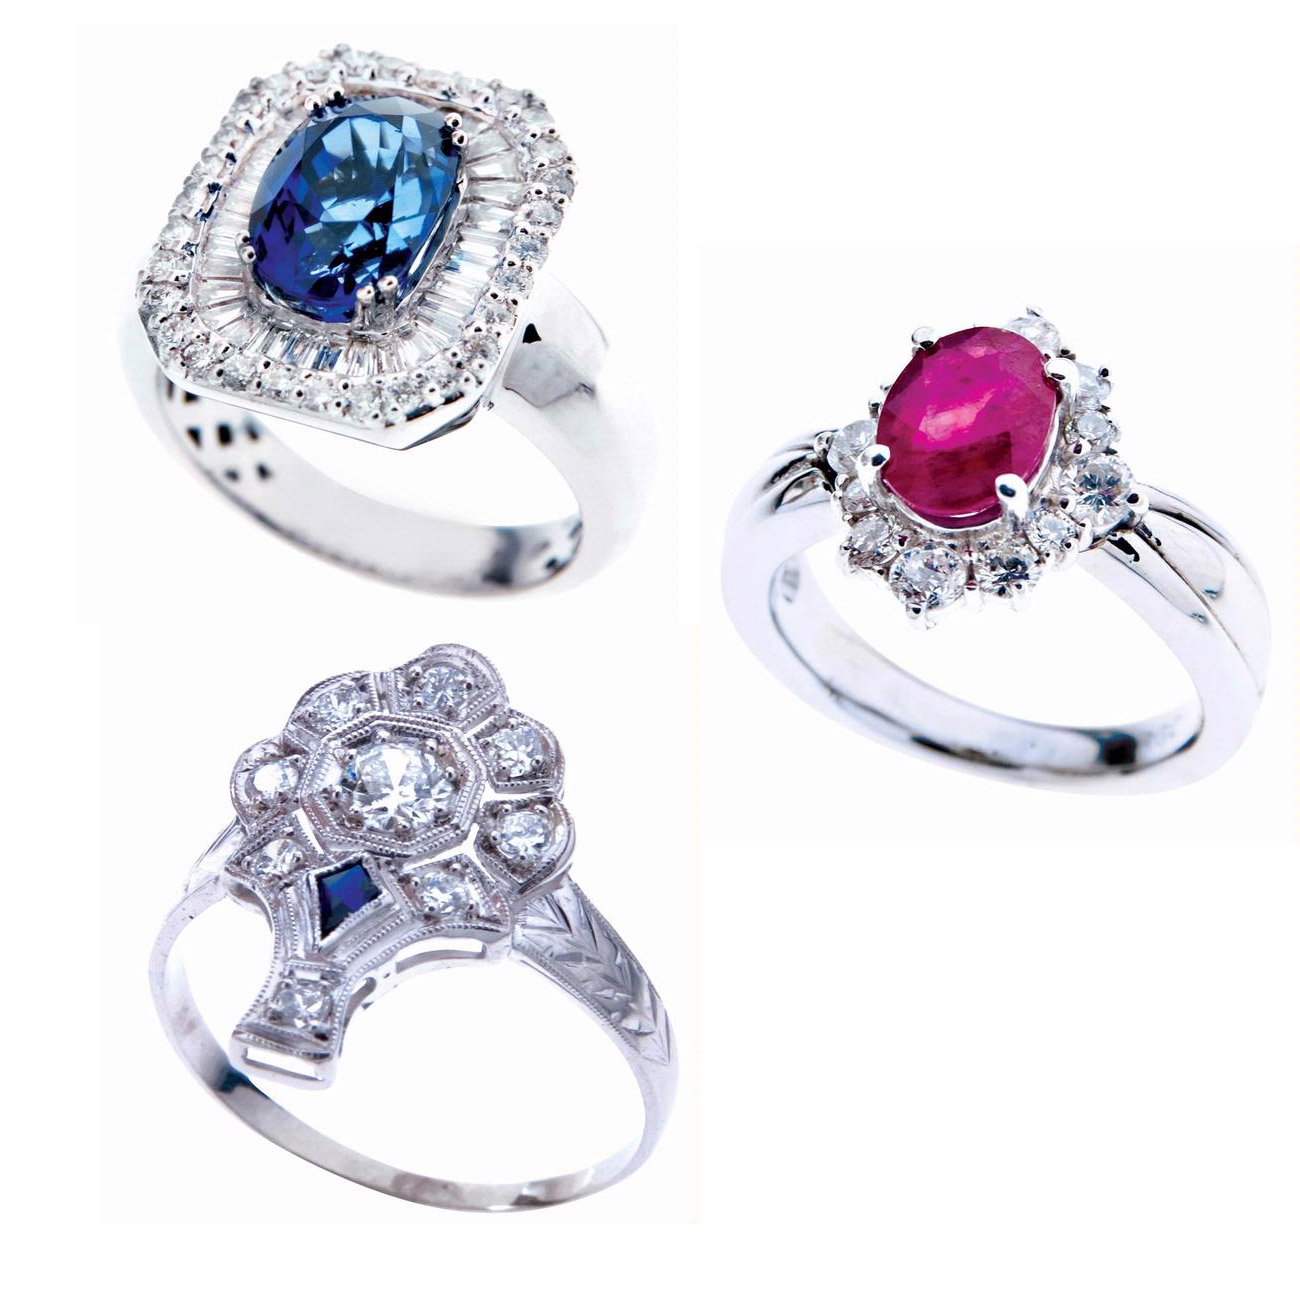 rings colorful engagement sex popsugar love